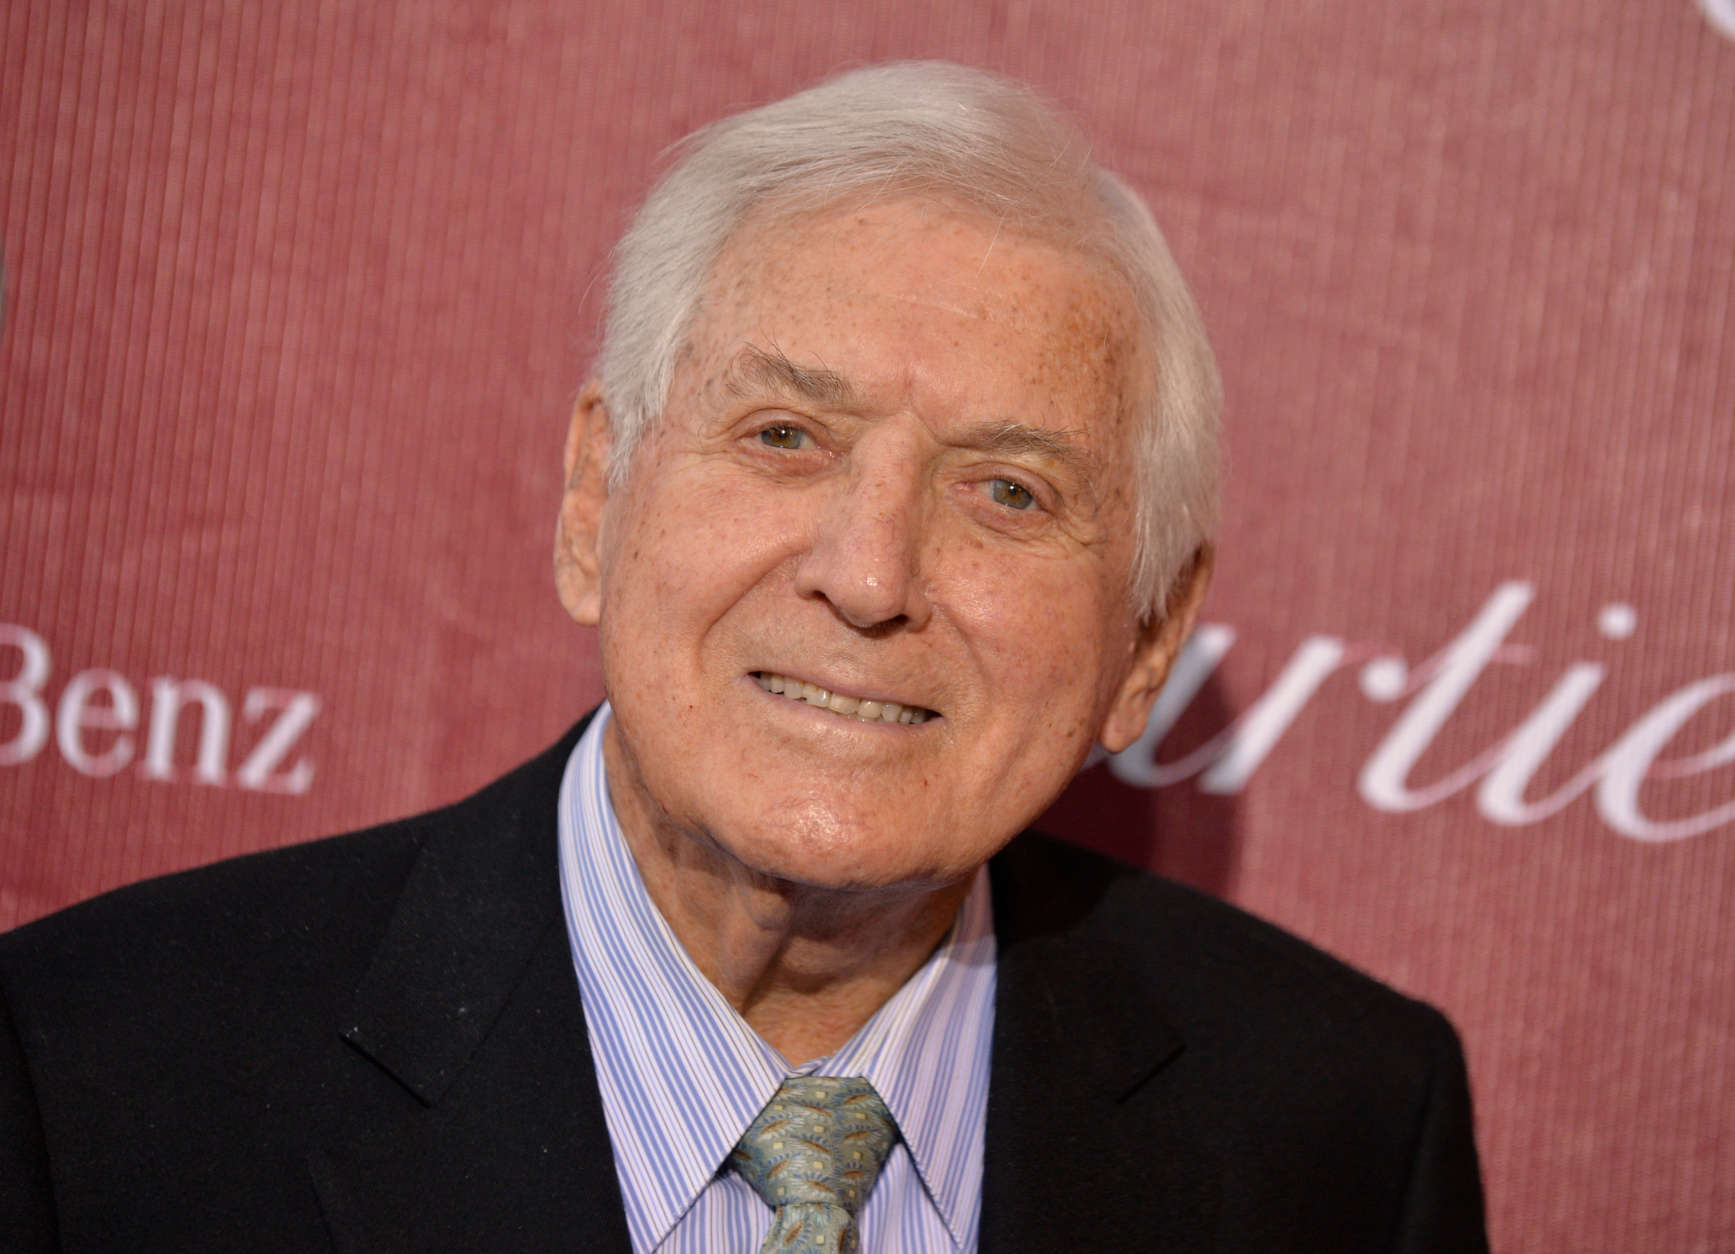 Monty Hall, co-creator and host of 'Let's Make a Deal' died on Sept. 30. He was 96.  Monty Hall arrives at the Palm Springs International Film Festival Awards Gala at the Palm Springs Convention Center on Saturday, Jan. 4, 2014, in Palm Springs, Calif. (Photo by Jordan Strauss/Invision/AP)